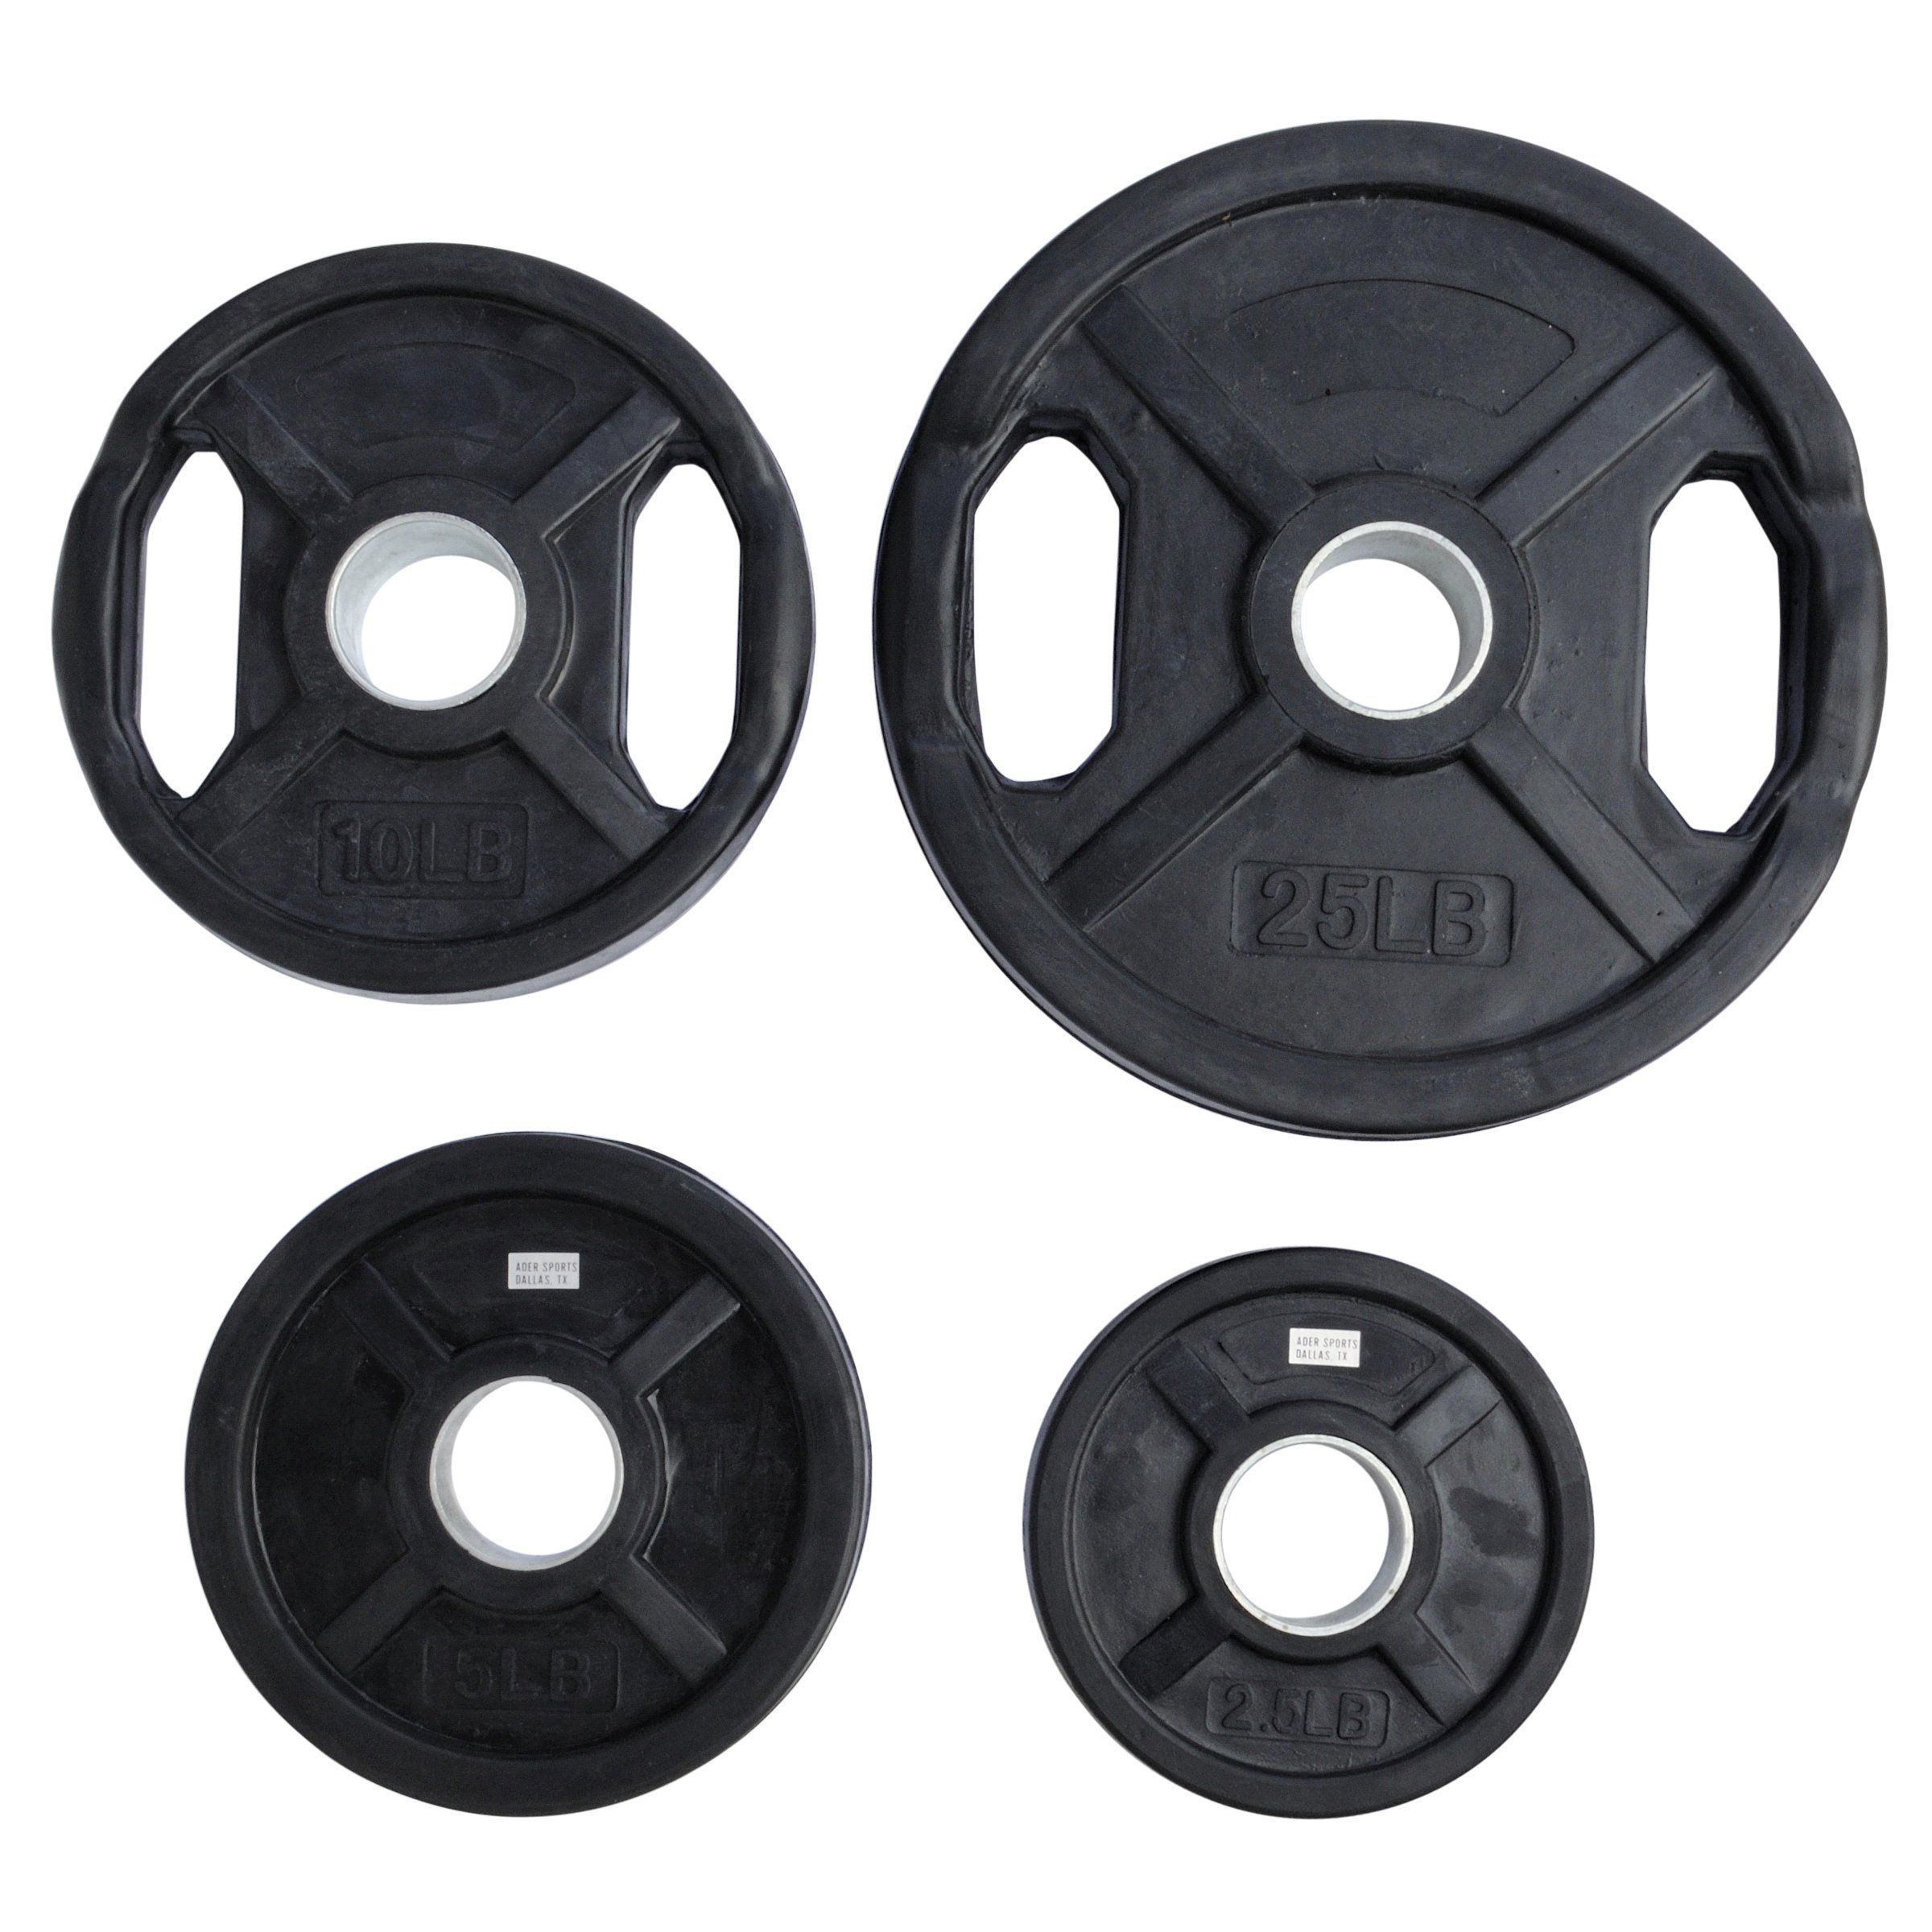 Pair of 5 Lb Grip Plates NEW Fitness Gear Olympic Size Barbell Weights